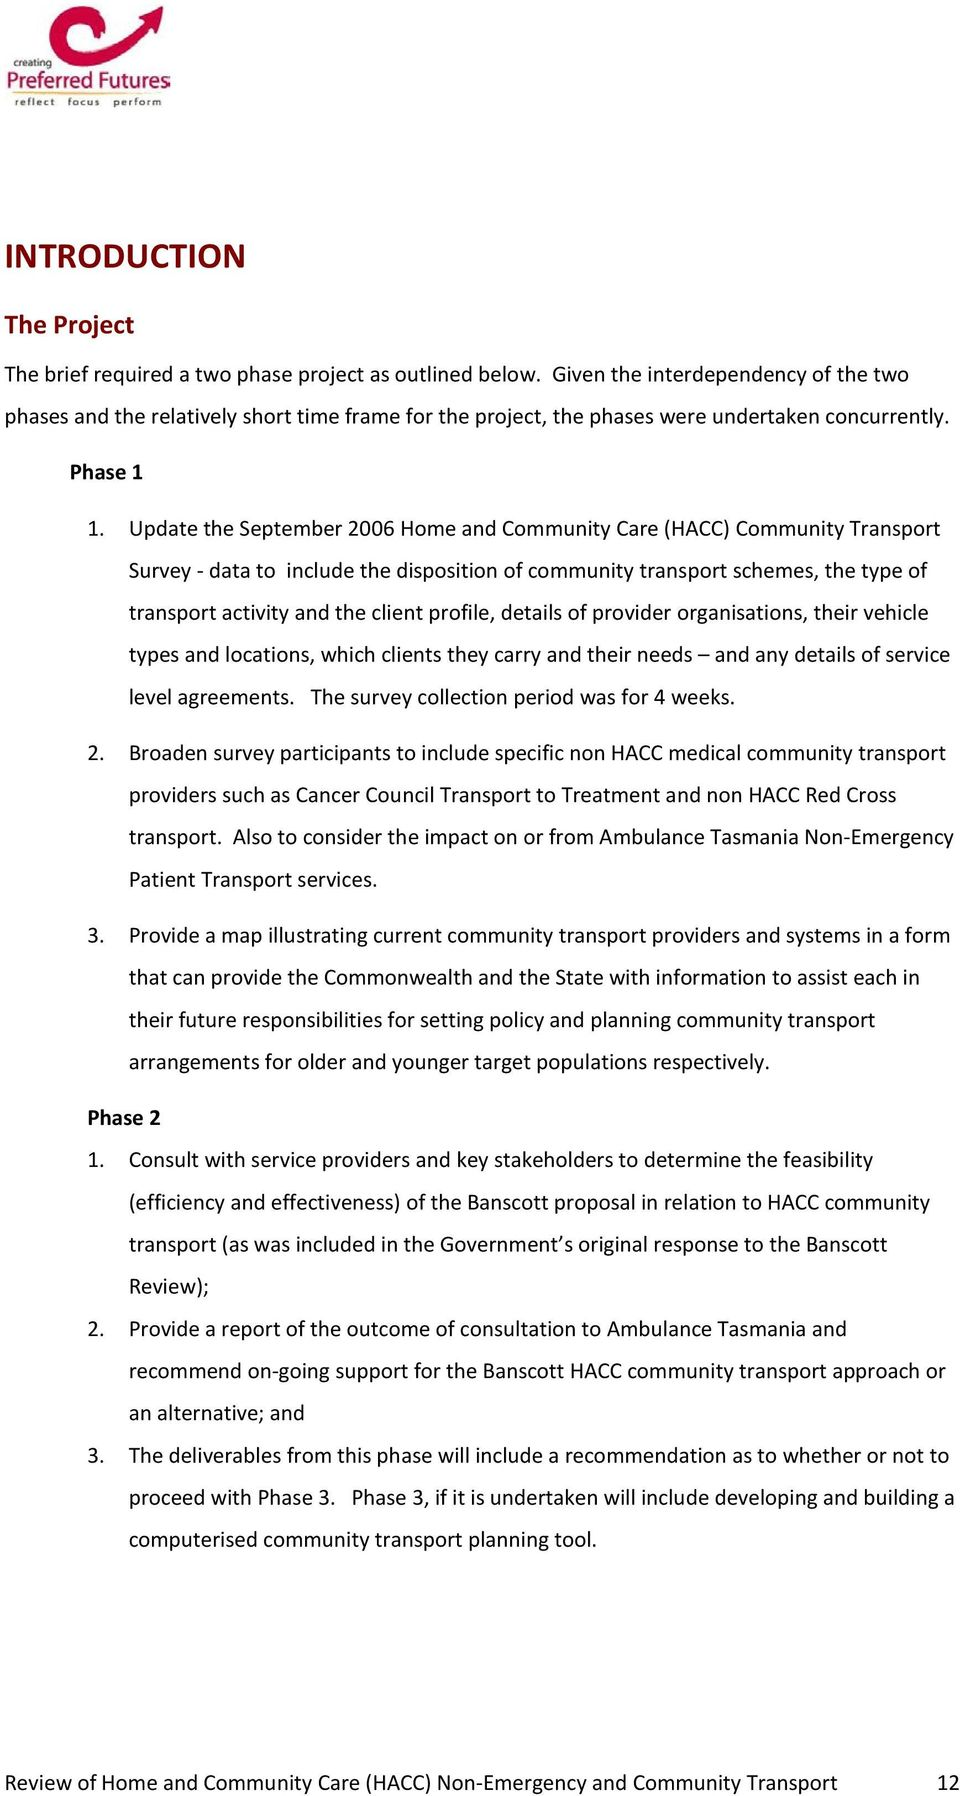 Update the September 2006 Home and Community Care (HACC) Community Transport Survey - data to include the disposition of community transport schemes, the type of transport activity and the client